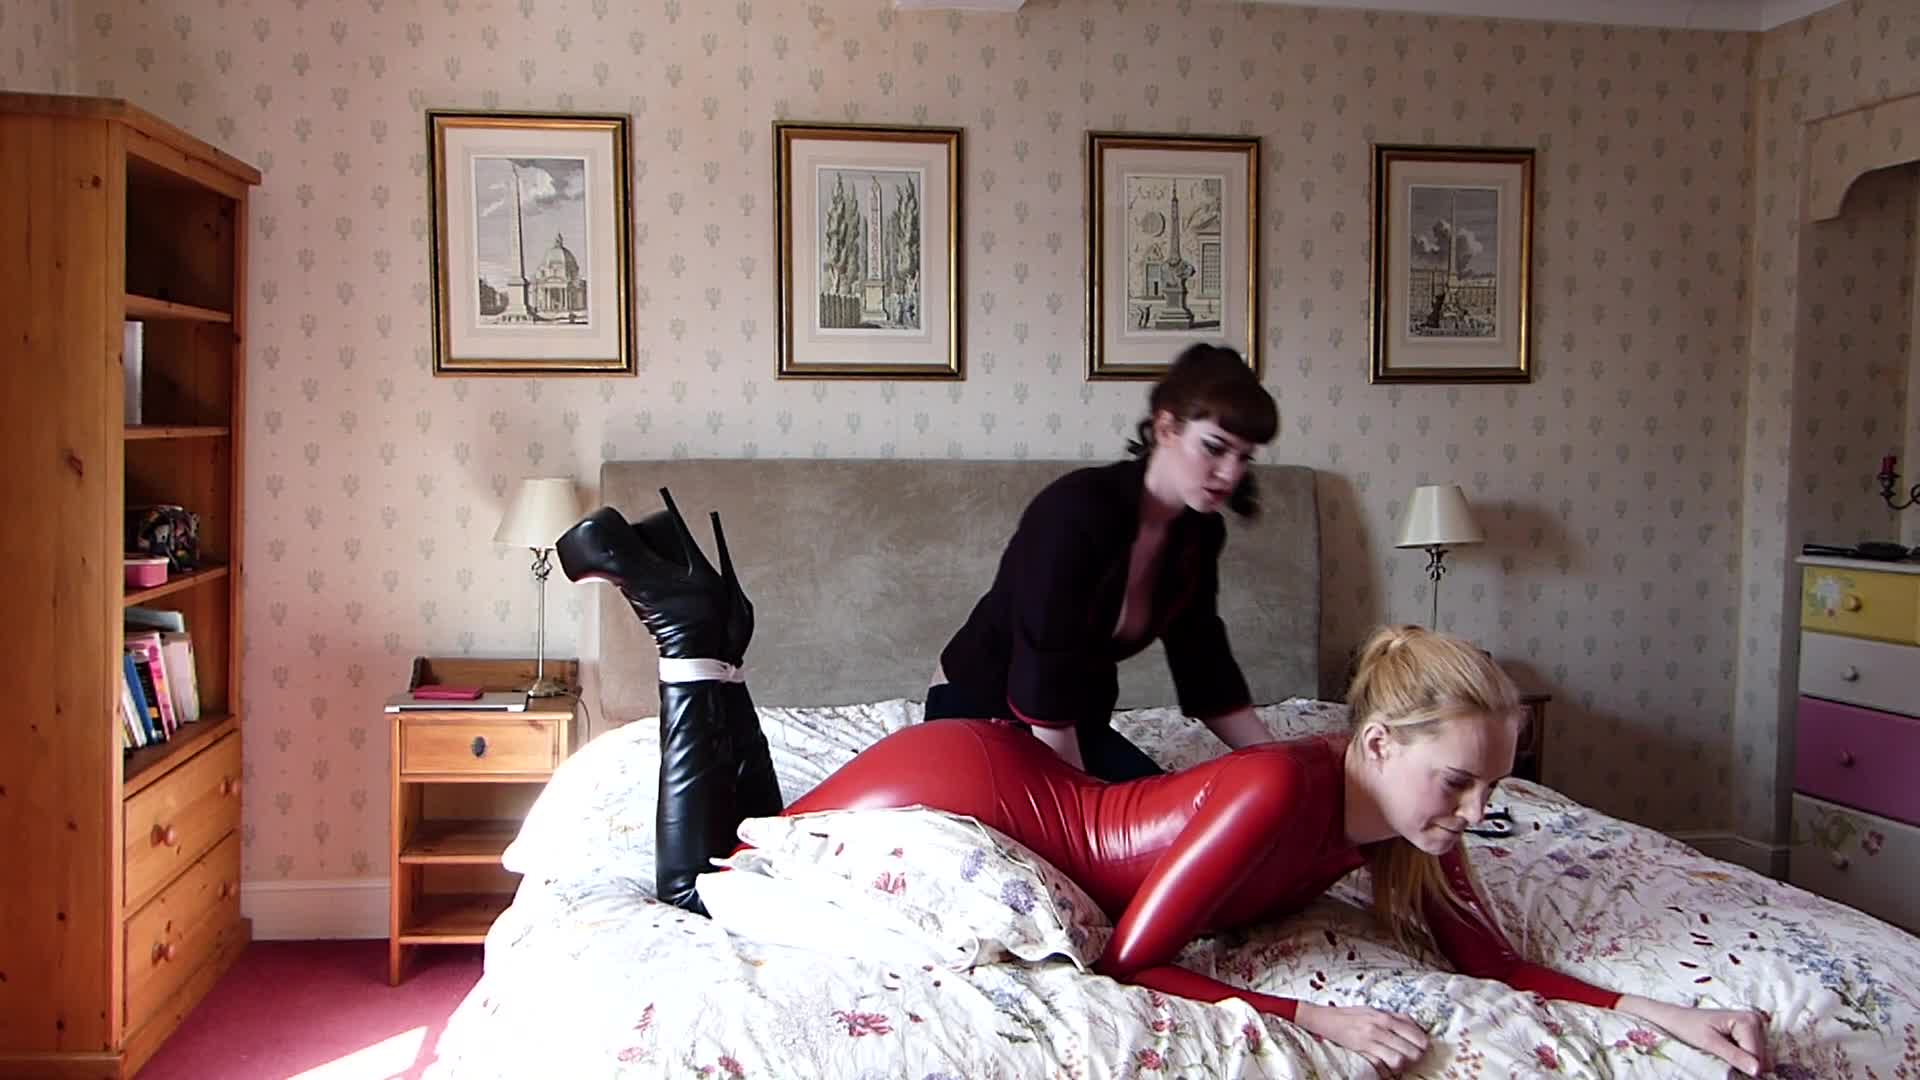 """Ariel Anderssen"" (Latex, Corporal Punishment, Spanking, Spanking F/F, Bondage) Strapped and Spanked in my Catsuit! - ManyVids Production"